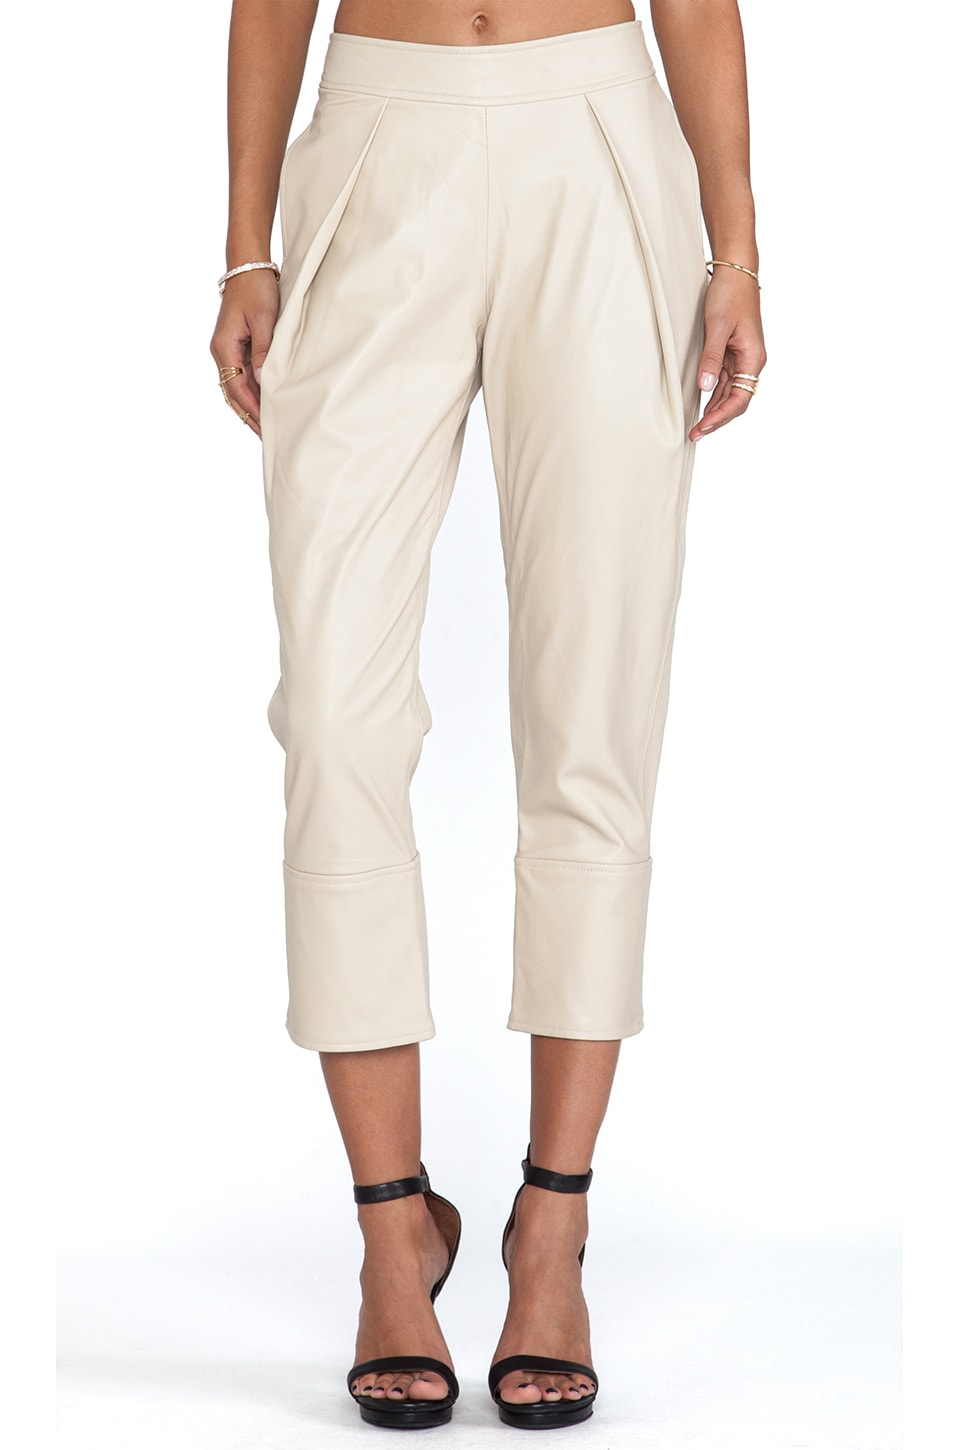 WINSTON WOLFE Cropped Tailor Pant in Cream